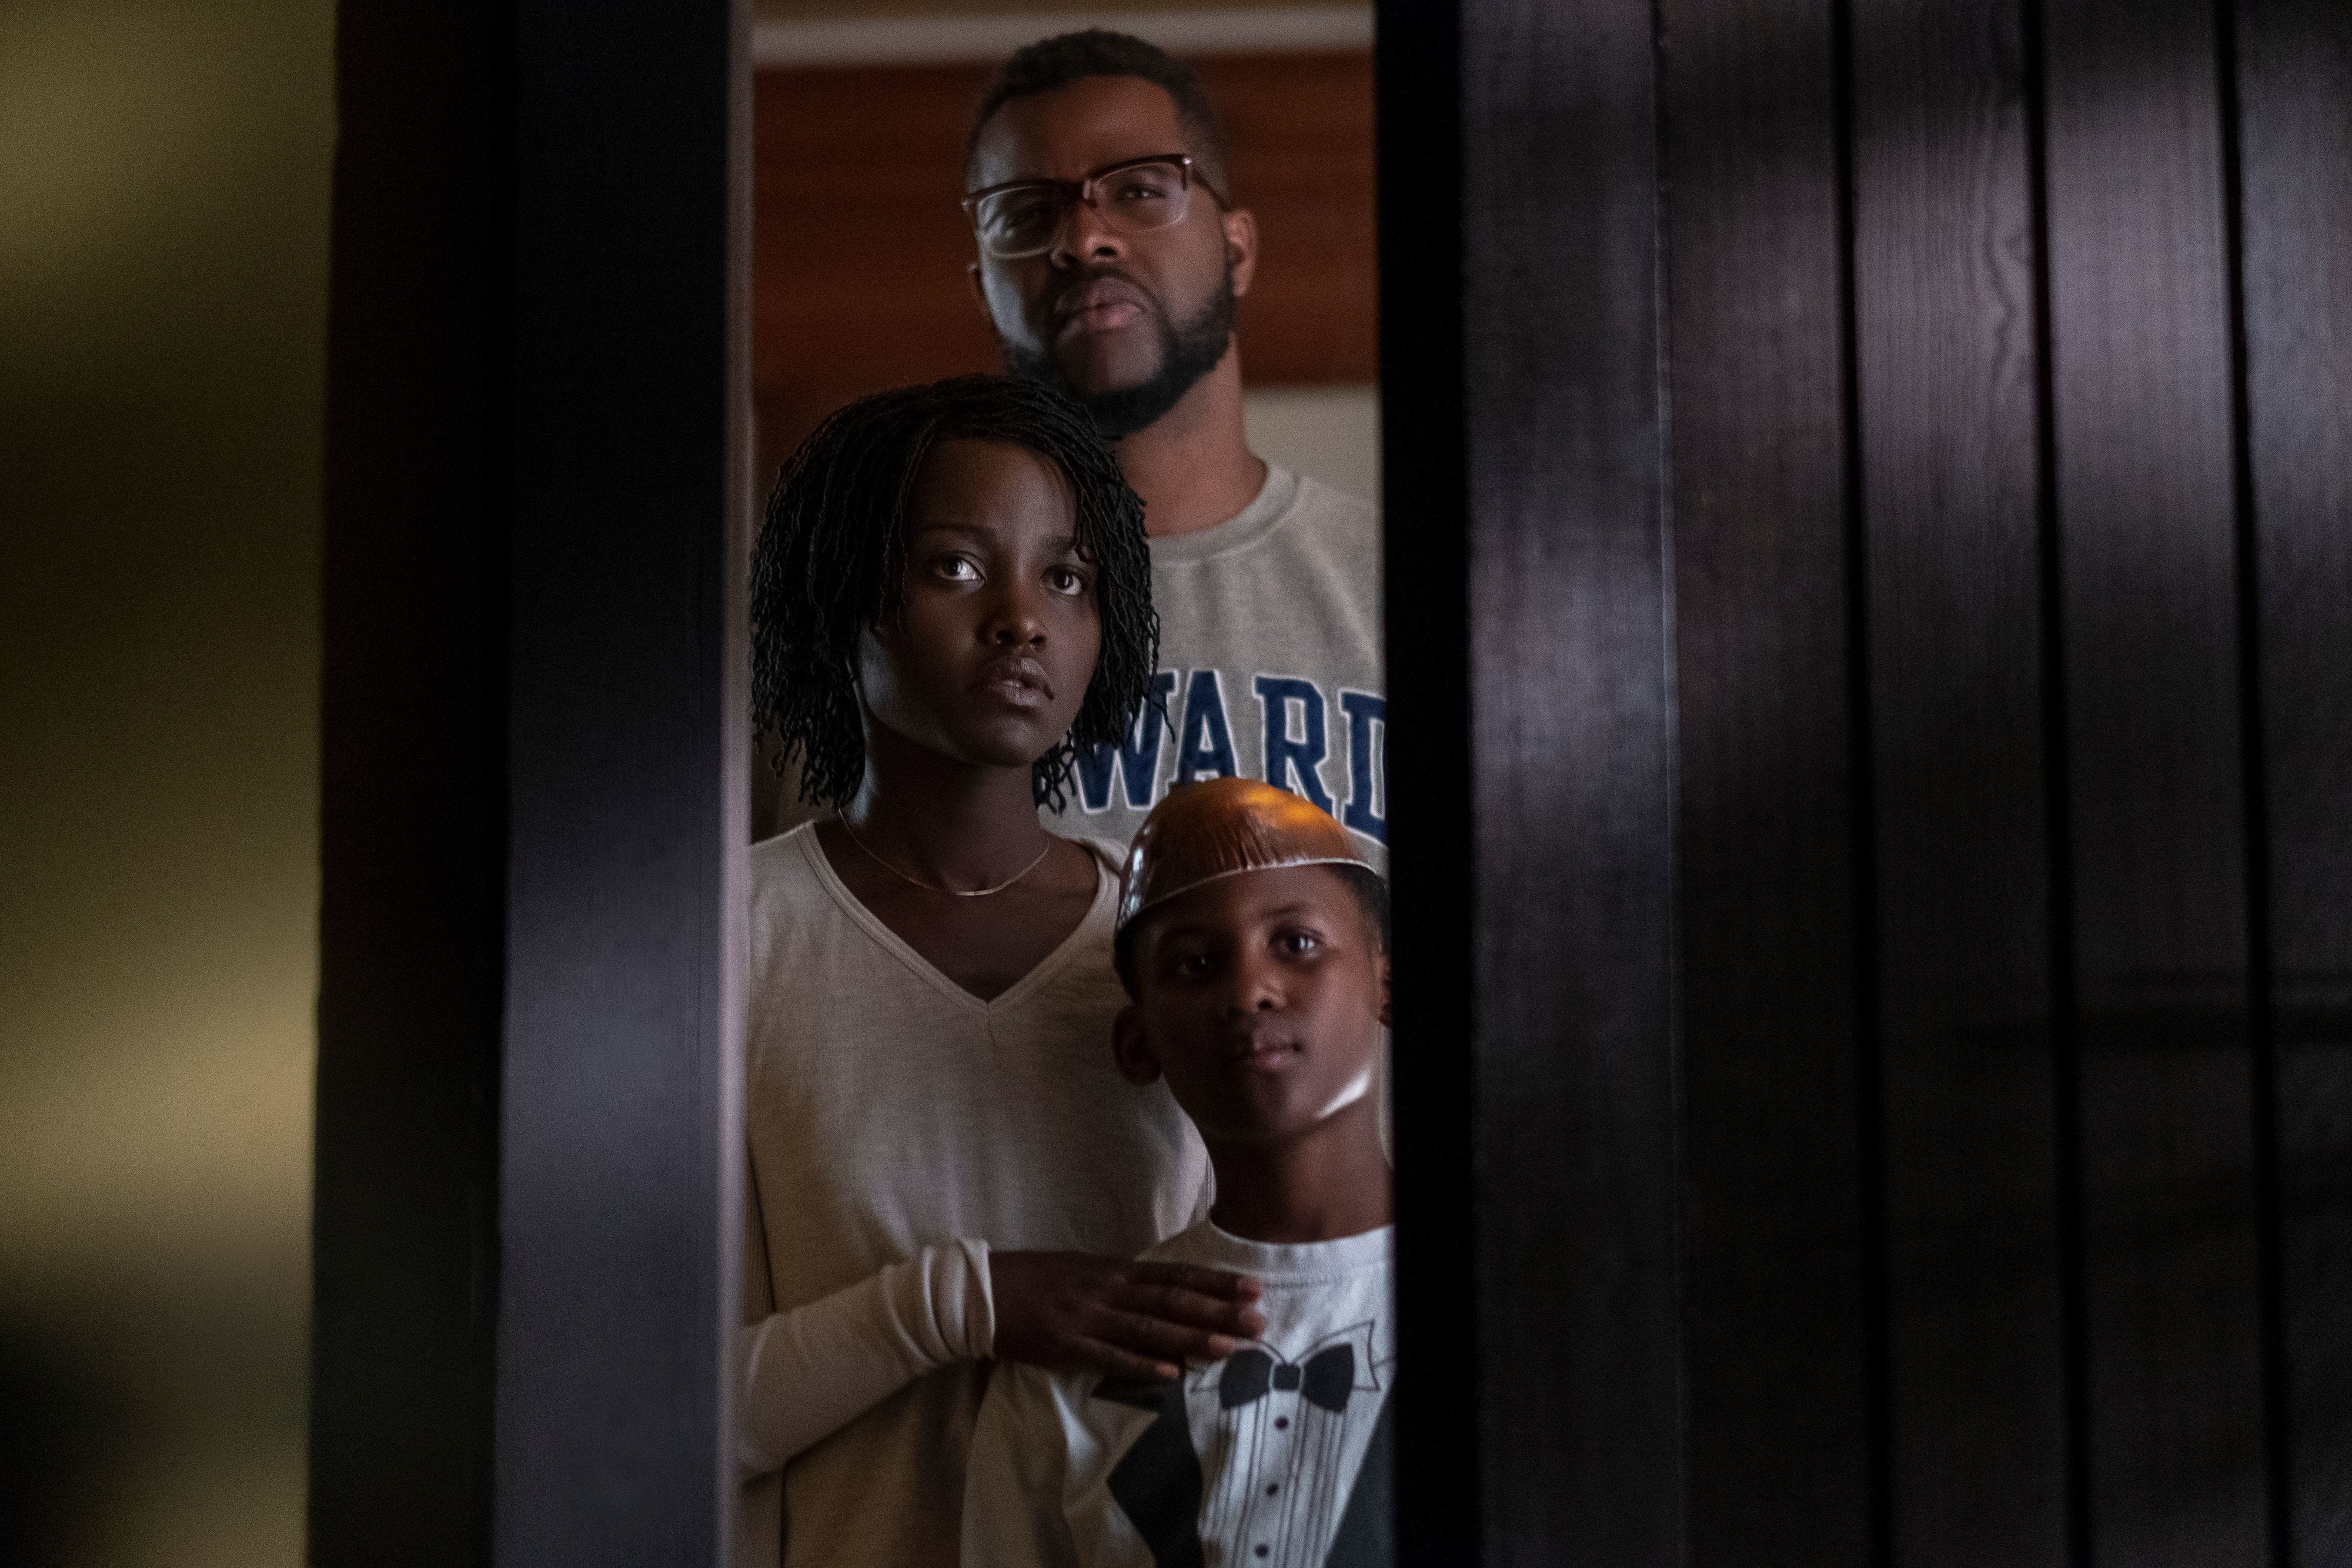 Jordan Peele's 'Us' totally kills it at the box office: $70.3M debut